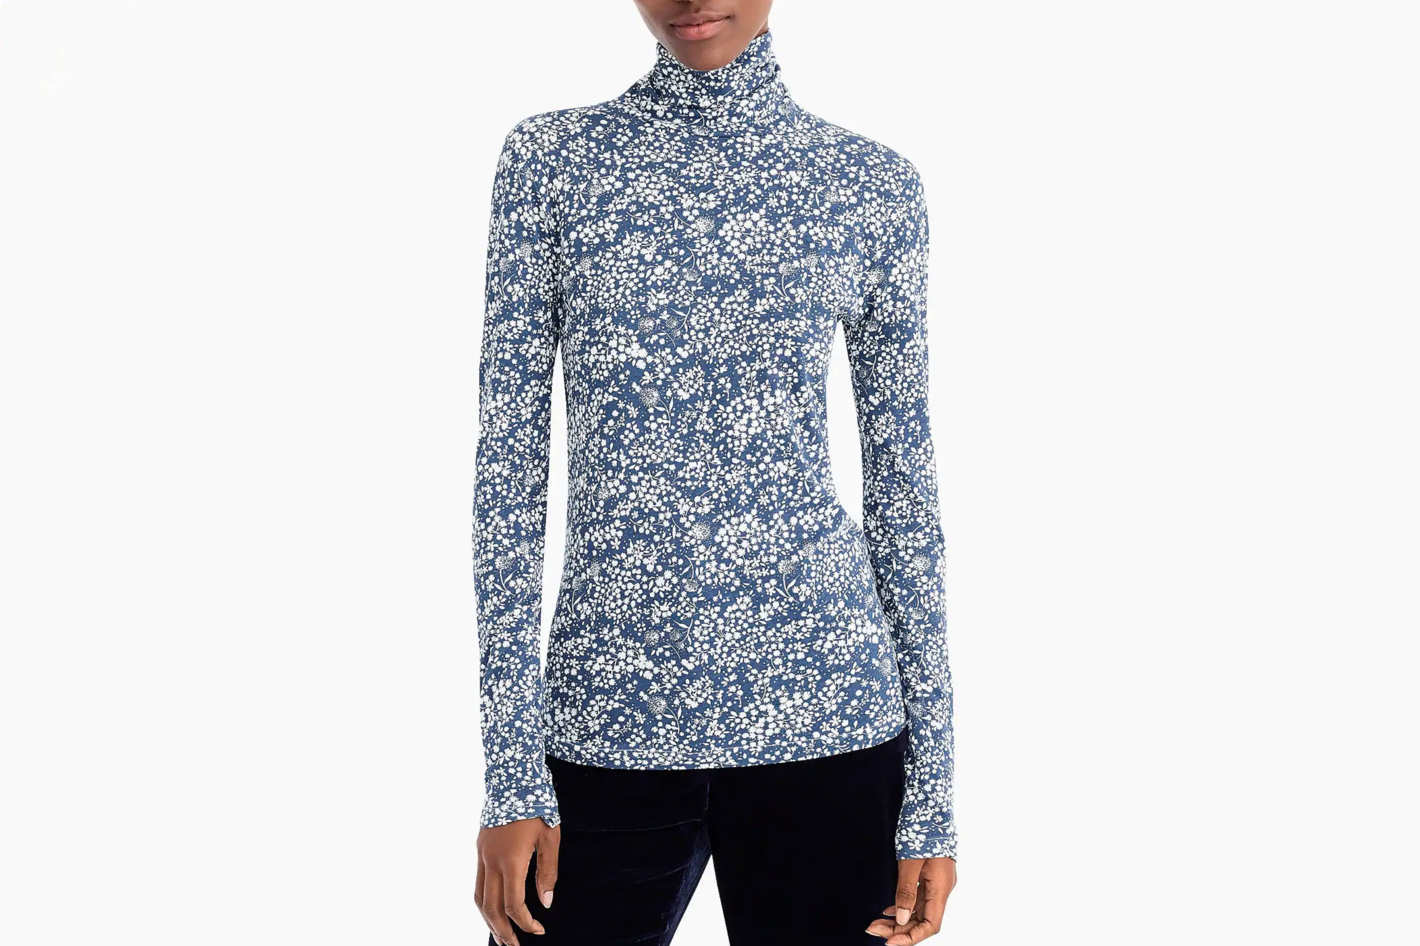 Tissue Turtleneck T-Shirt in Floral